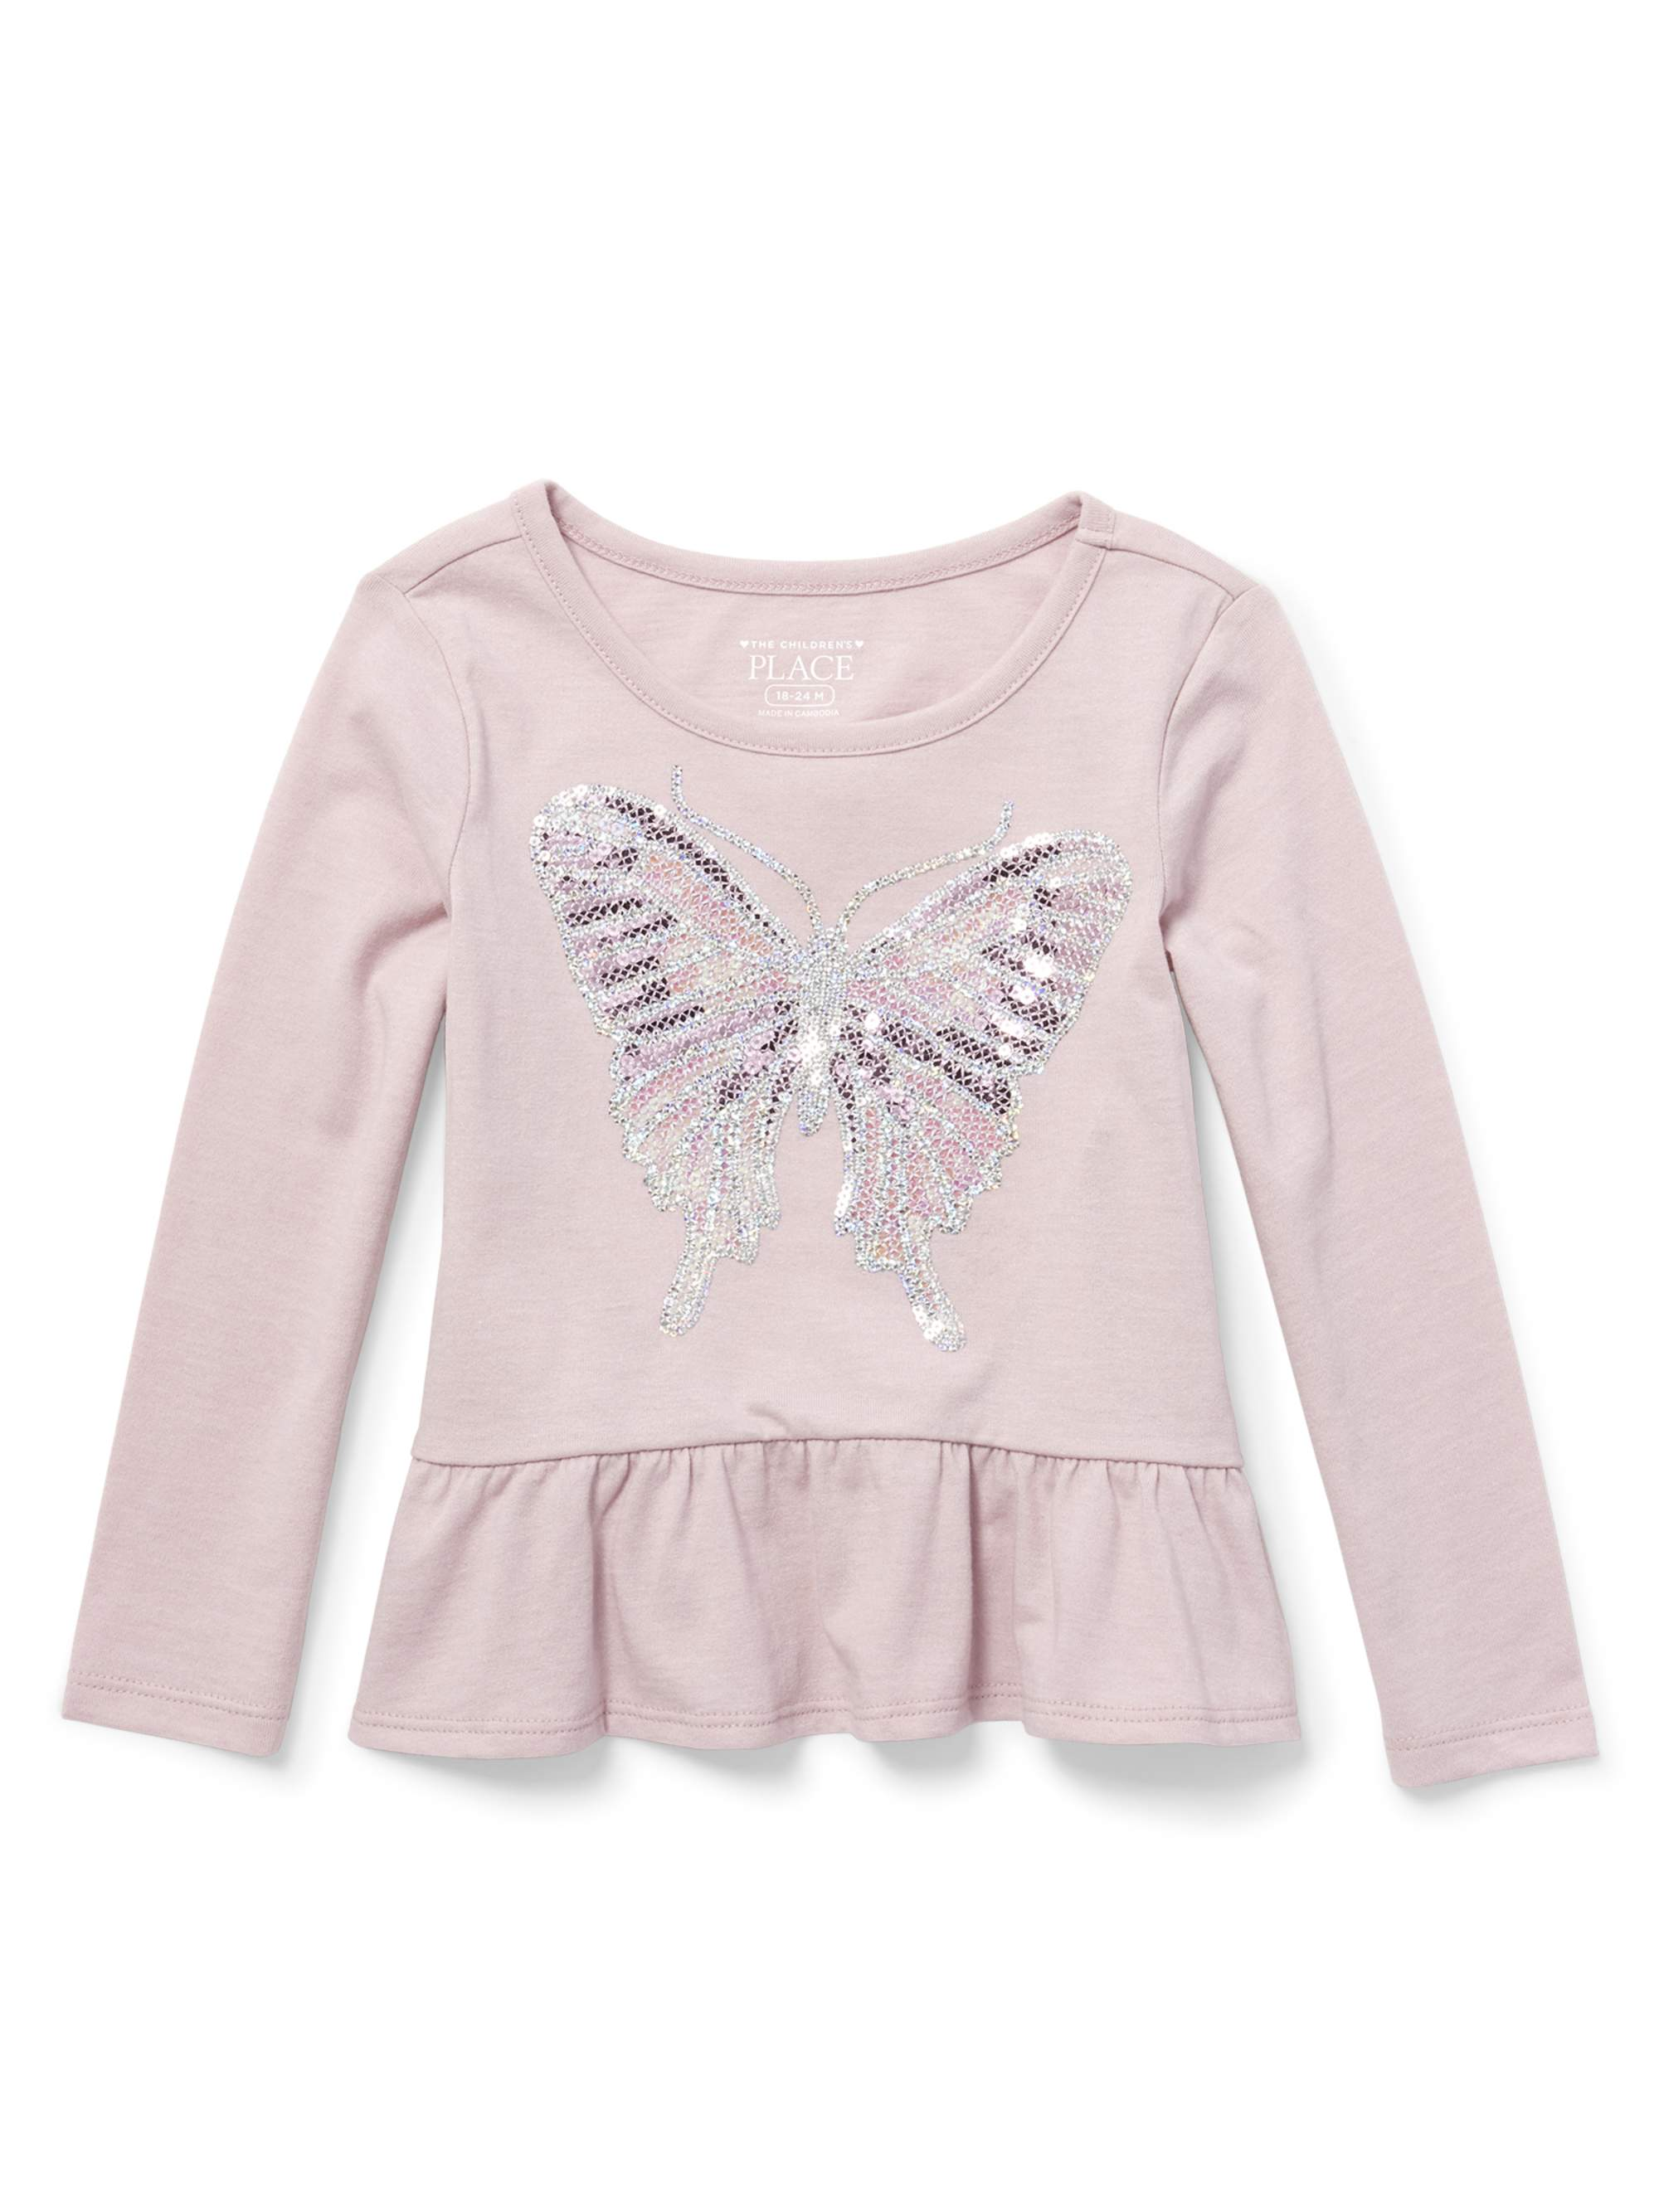 Baby And Toddler Girls Long Sleeve Peplum Top